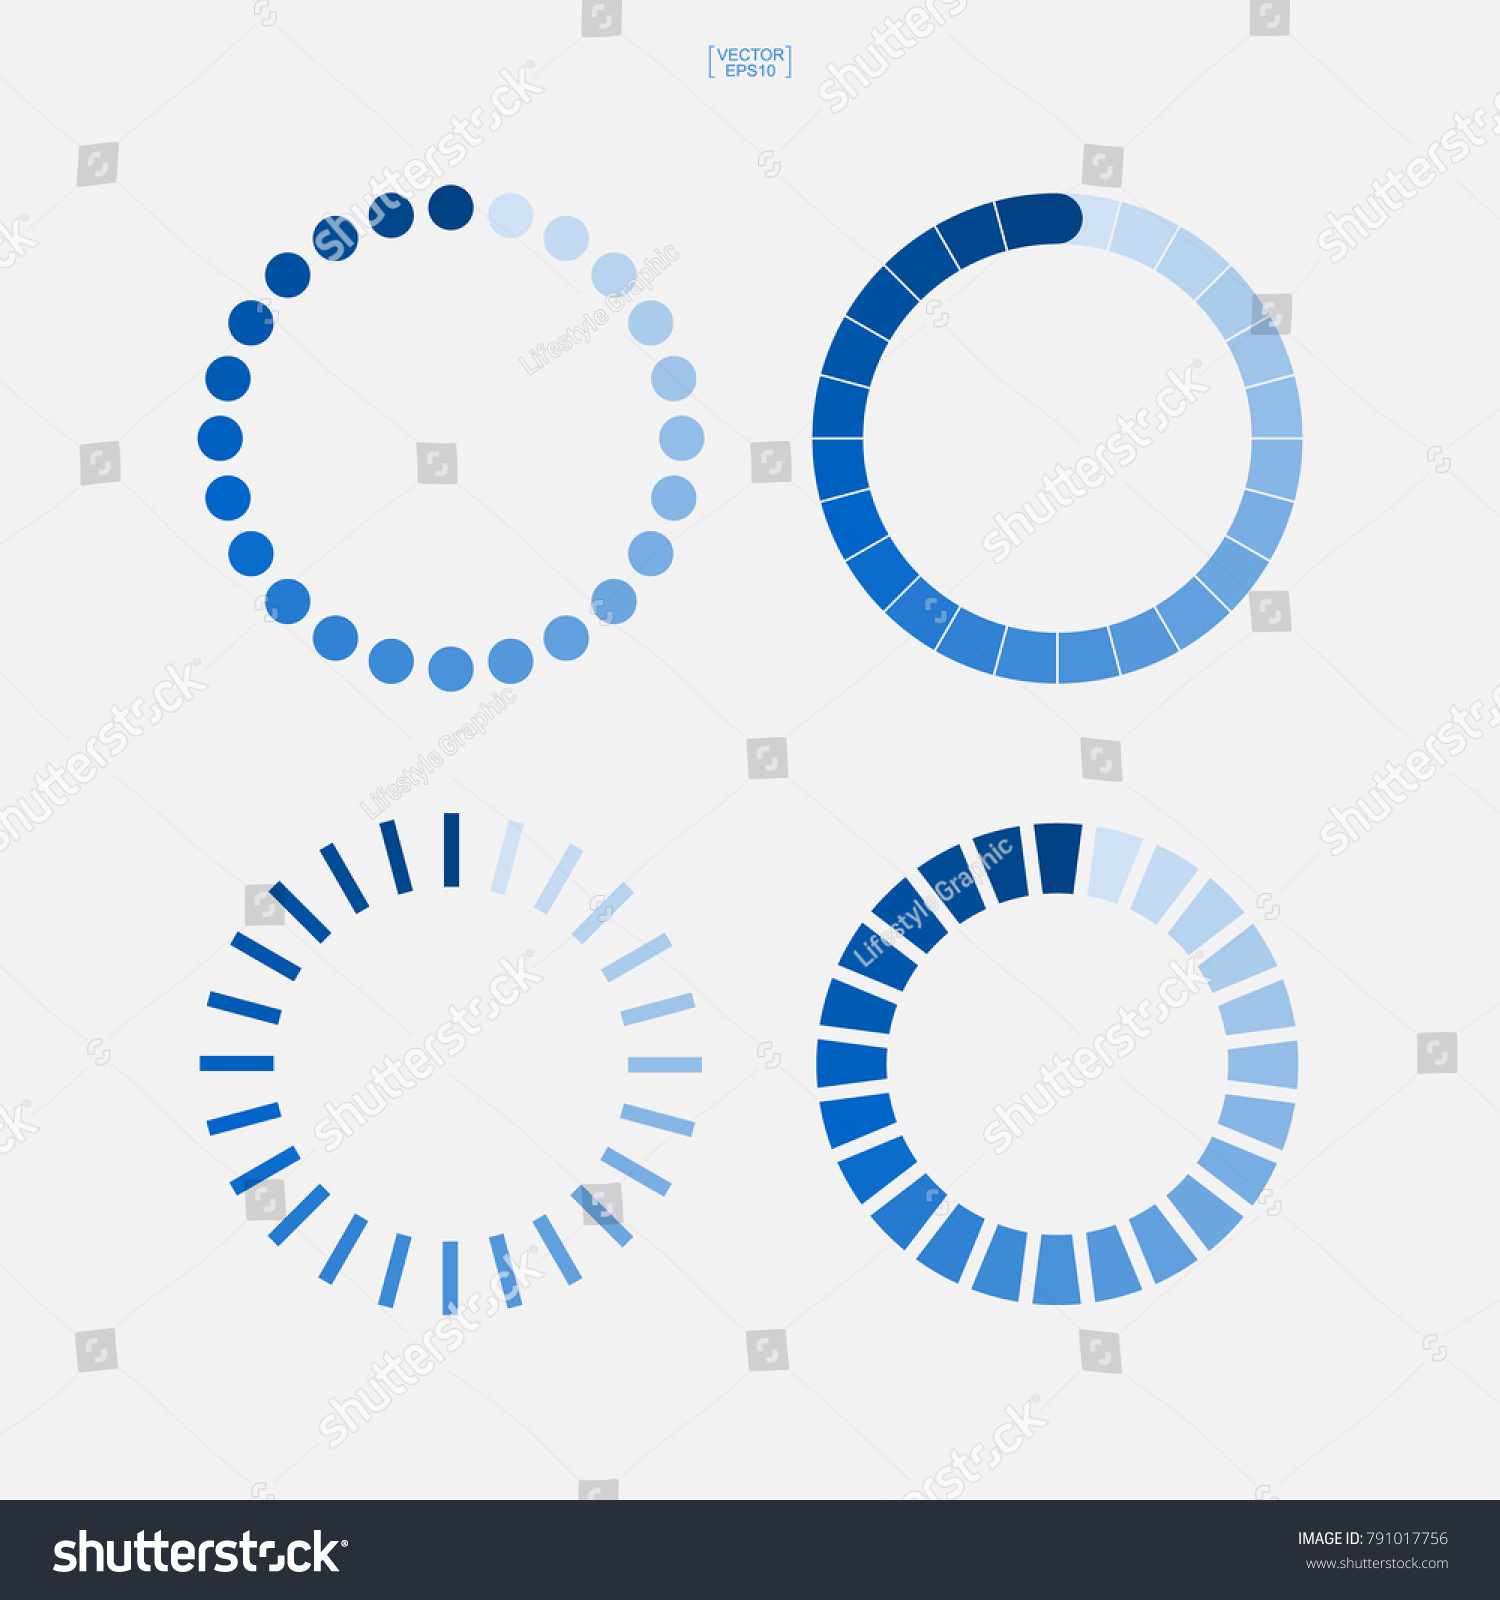 Loading symbol set abstract spinner icon stock vector 791017756 loading symbol set abstract spinner icon for web page design vector illustration biocorpaavc Image collections